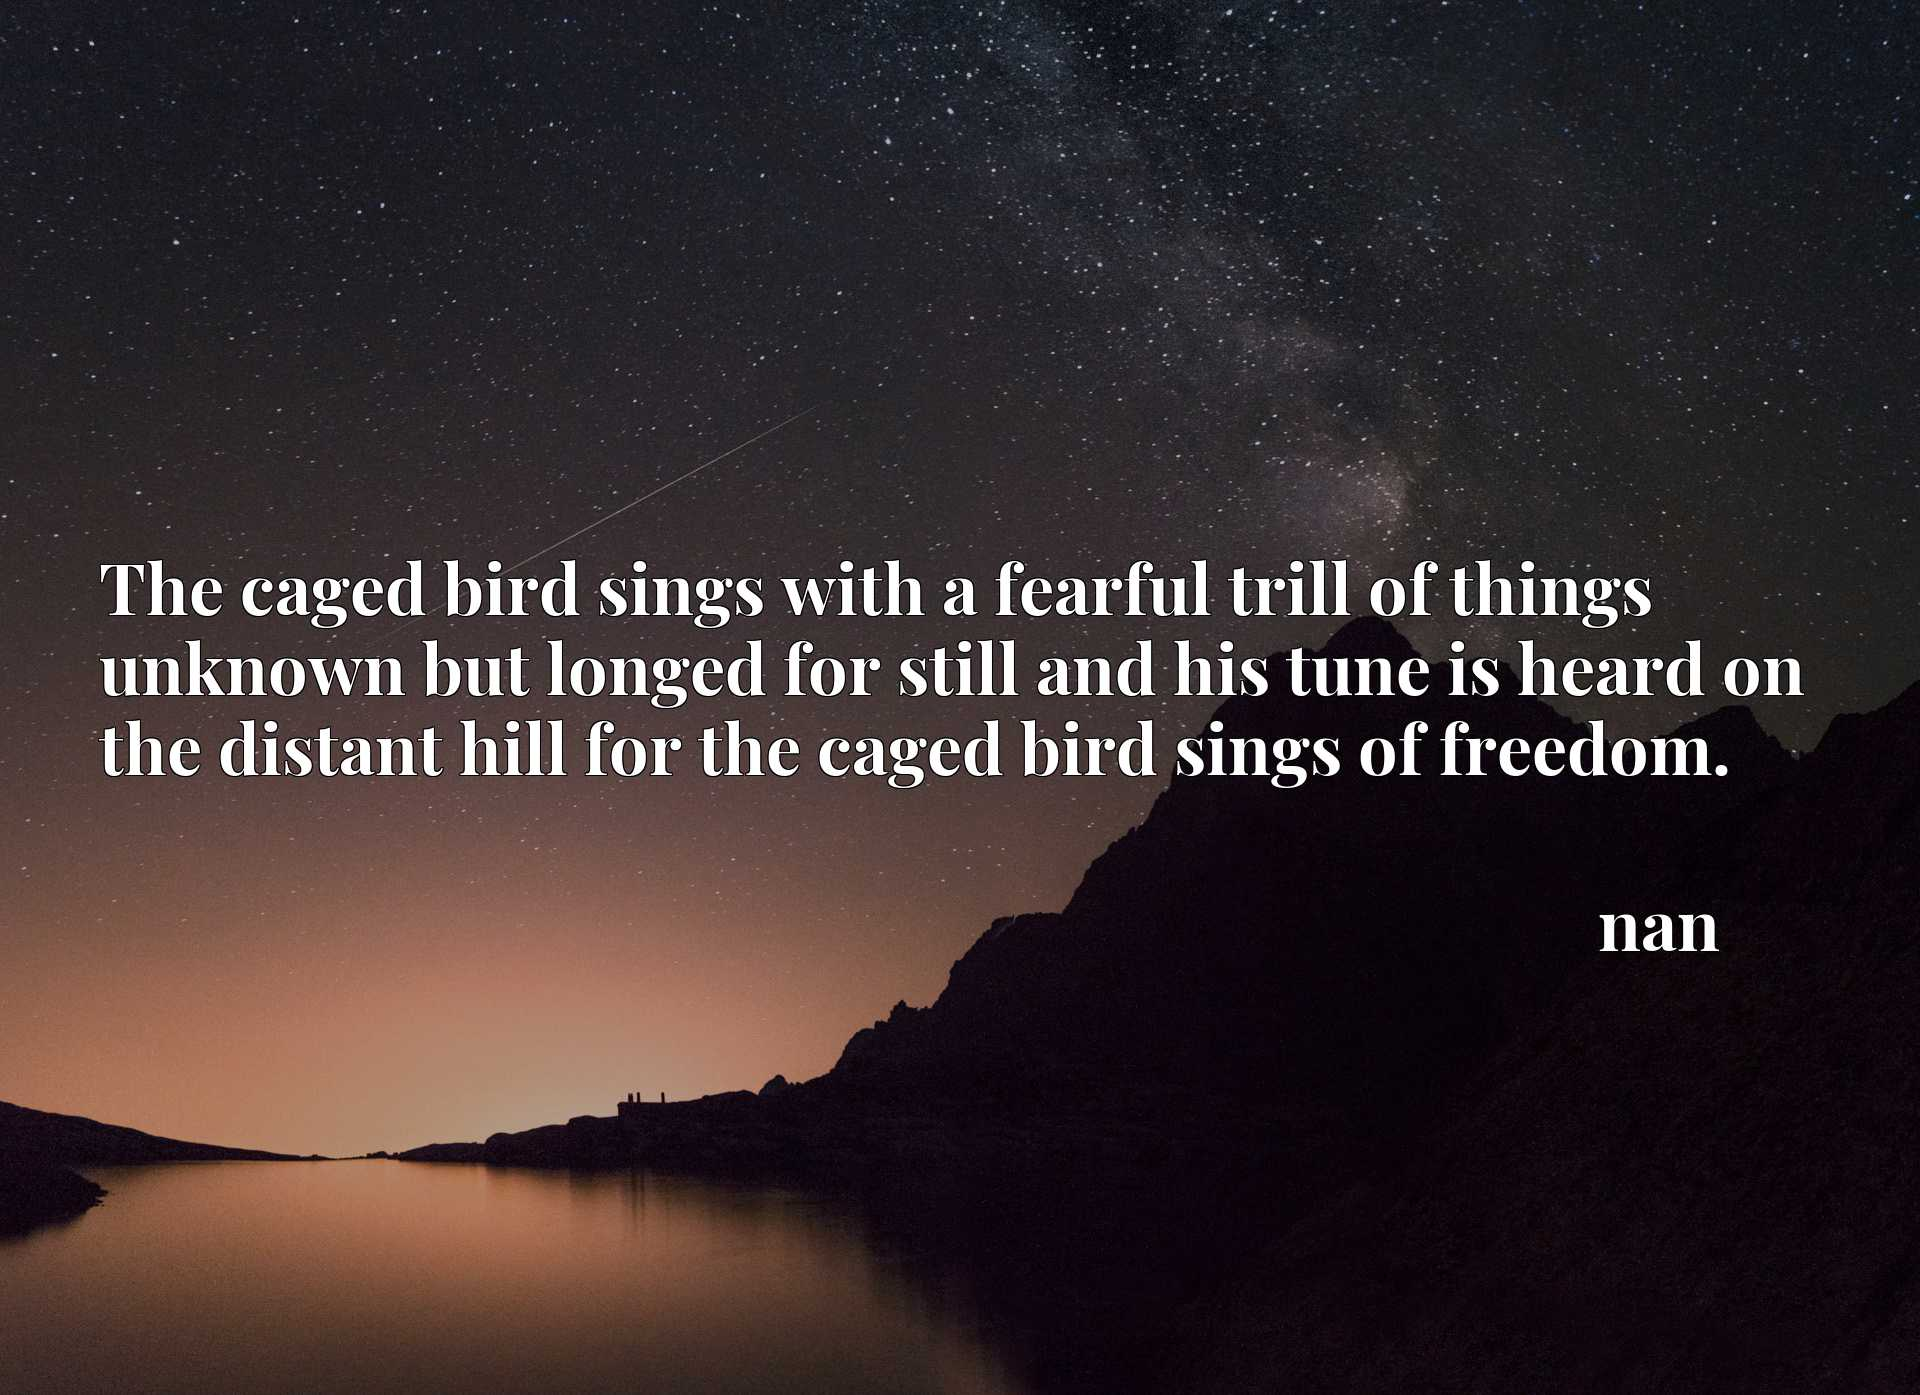 The caged bird sings with a fearful trill of things unknown but longed for still and his tune is heard on the distant hill for the caged bird sings of freedom.